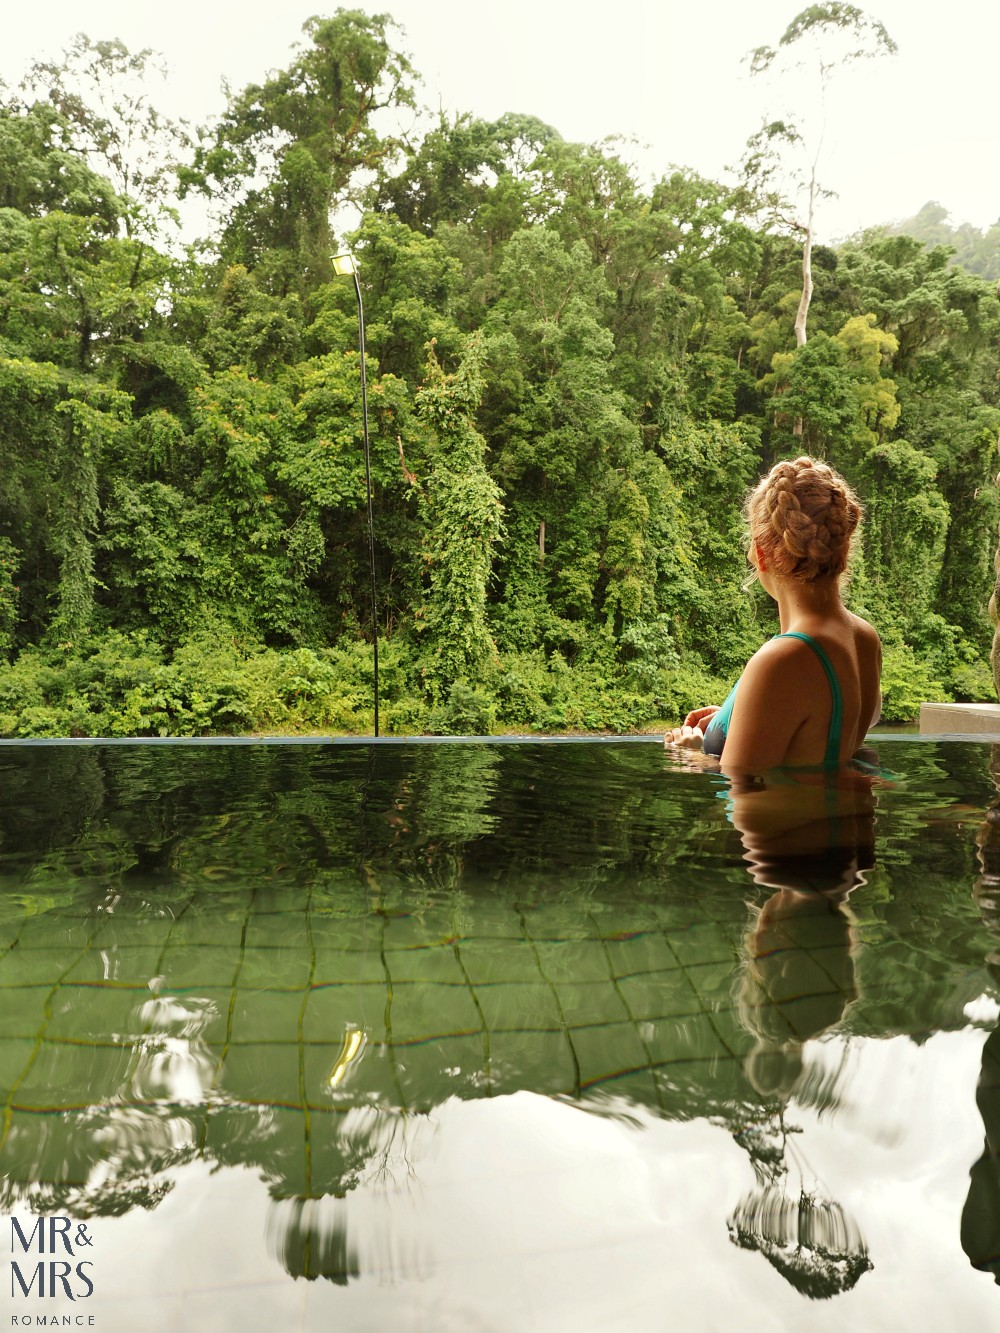 Bucket list hotel pools - Danum Valley, Borneo